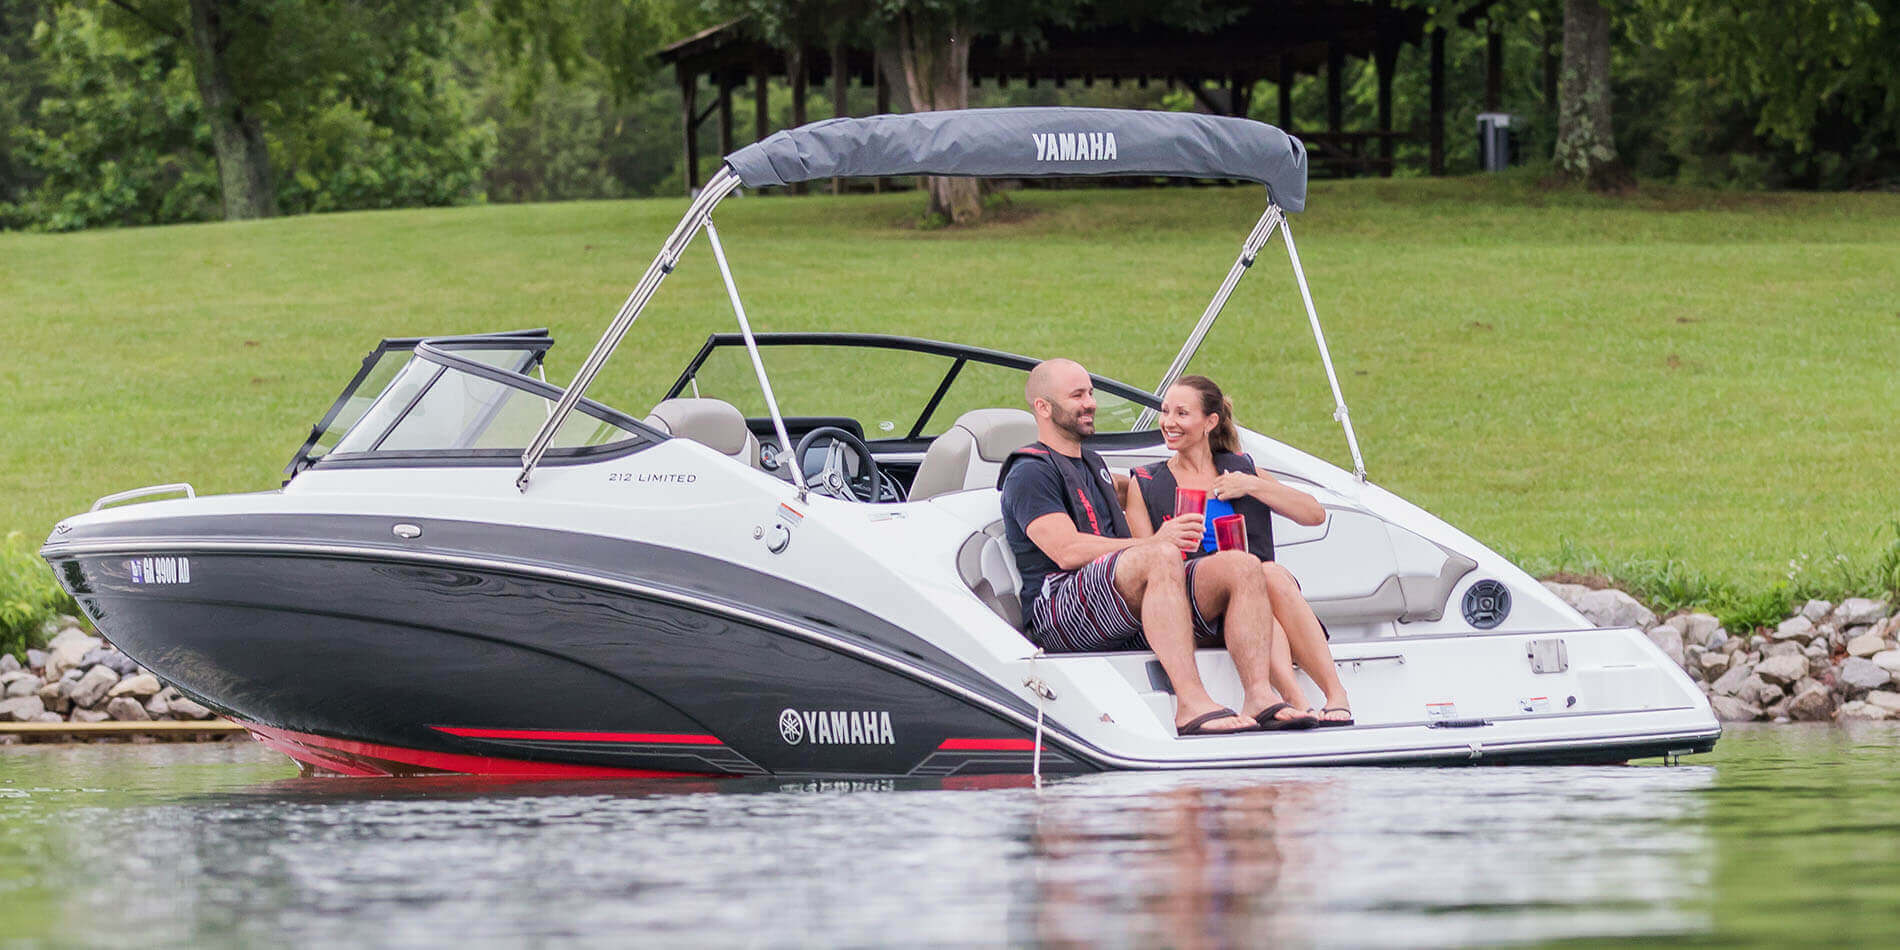 Yamaha boats 212 limited 2018 black red swim platform for 2018 yamaha jet boat